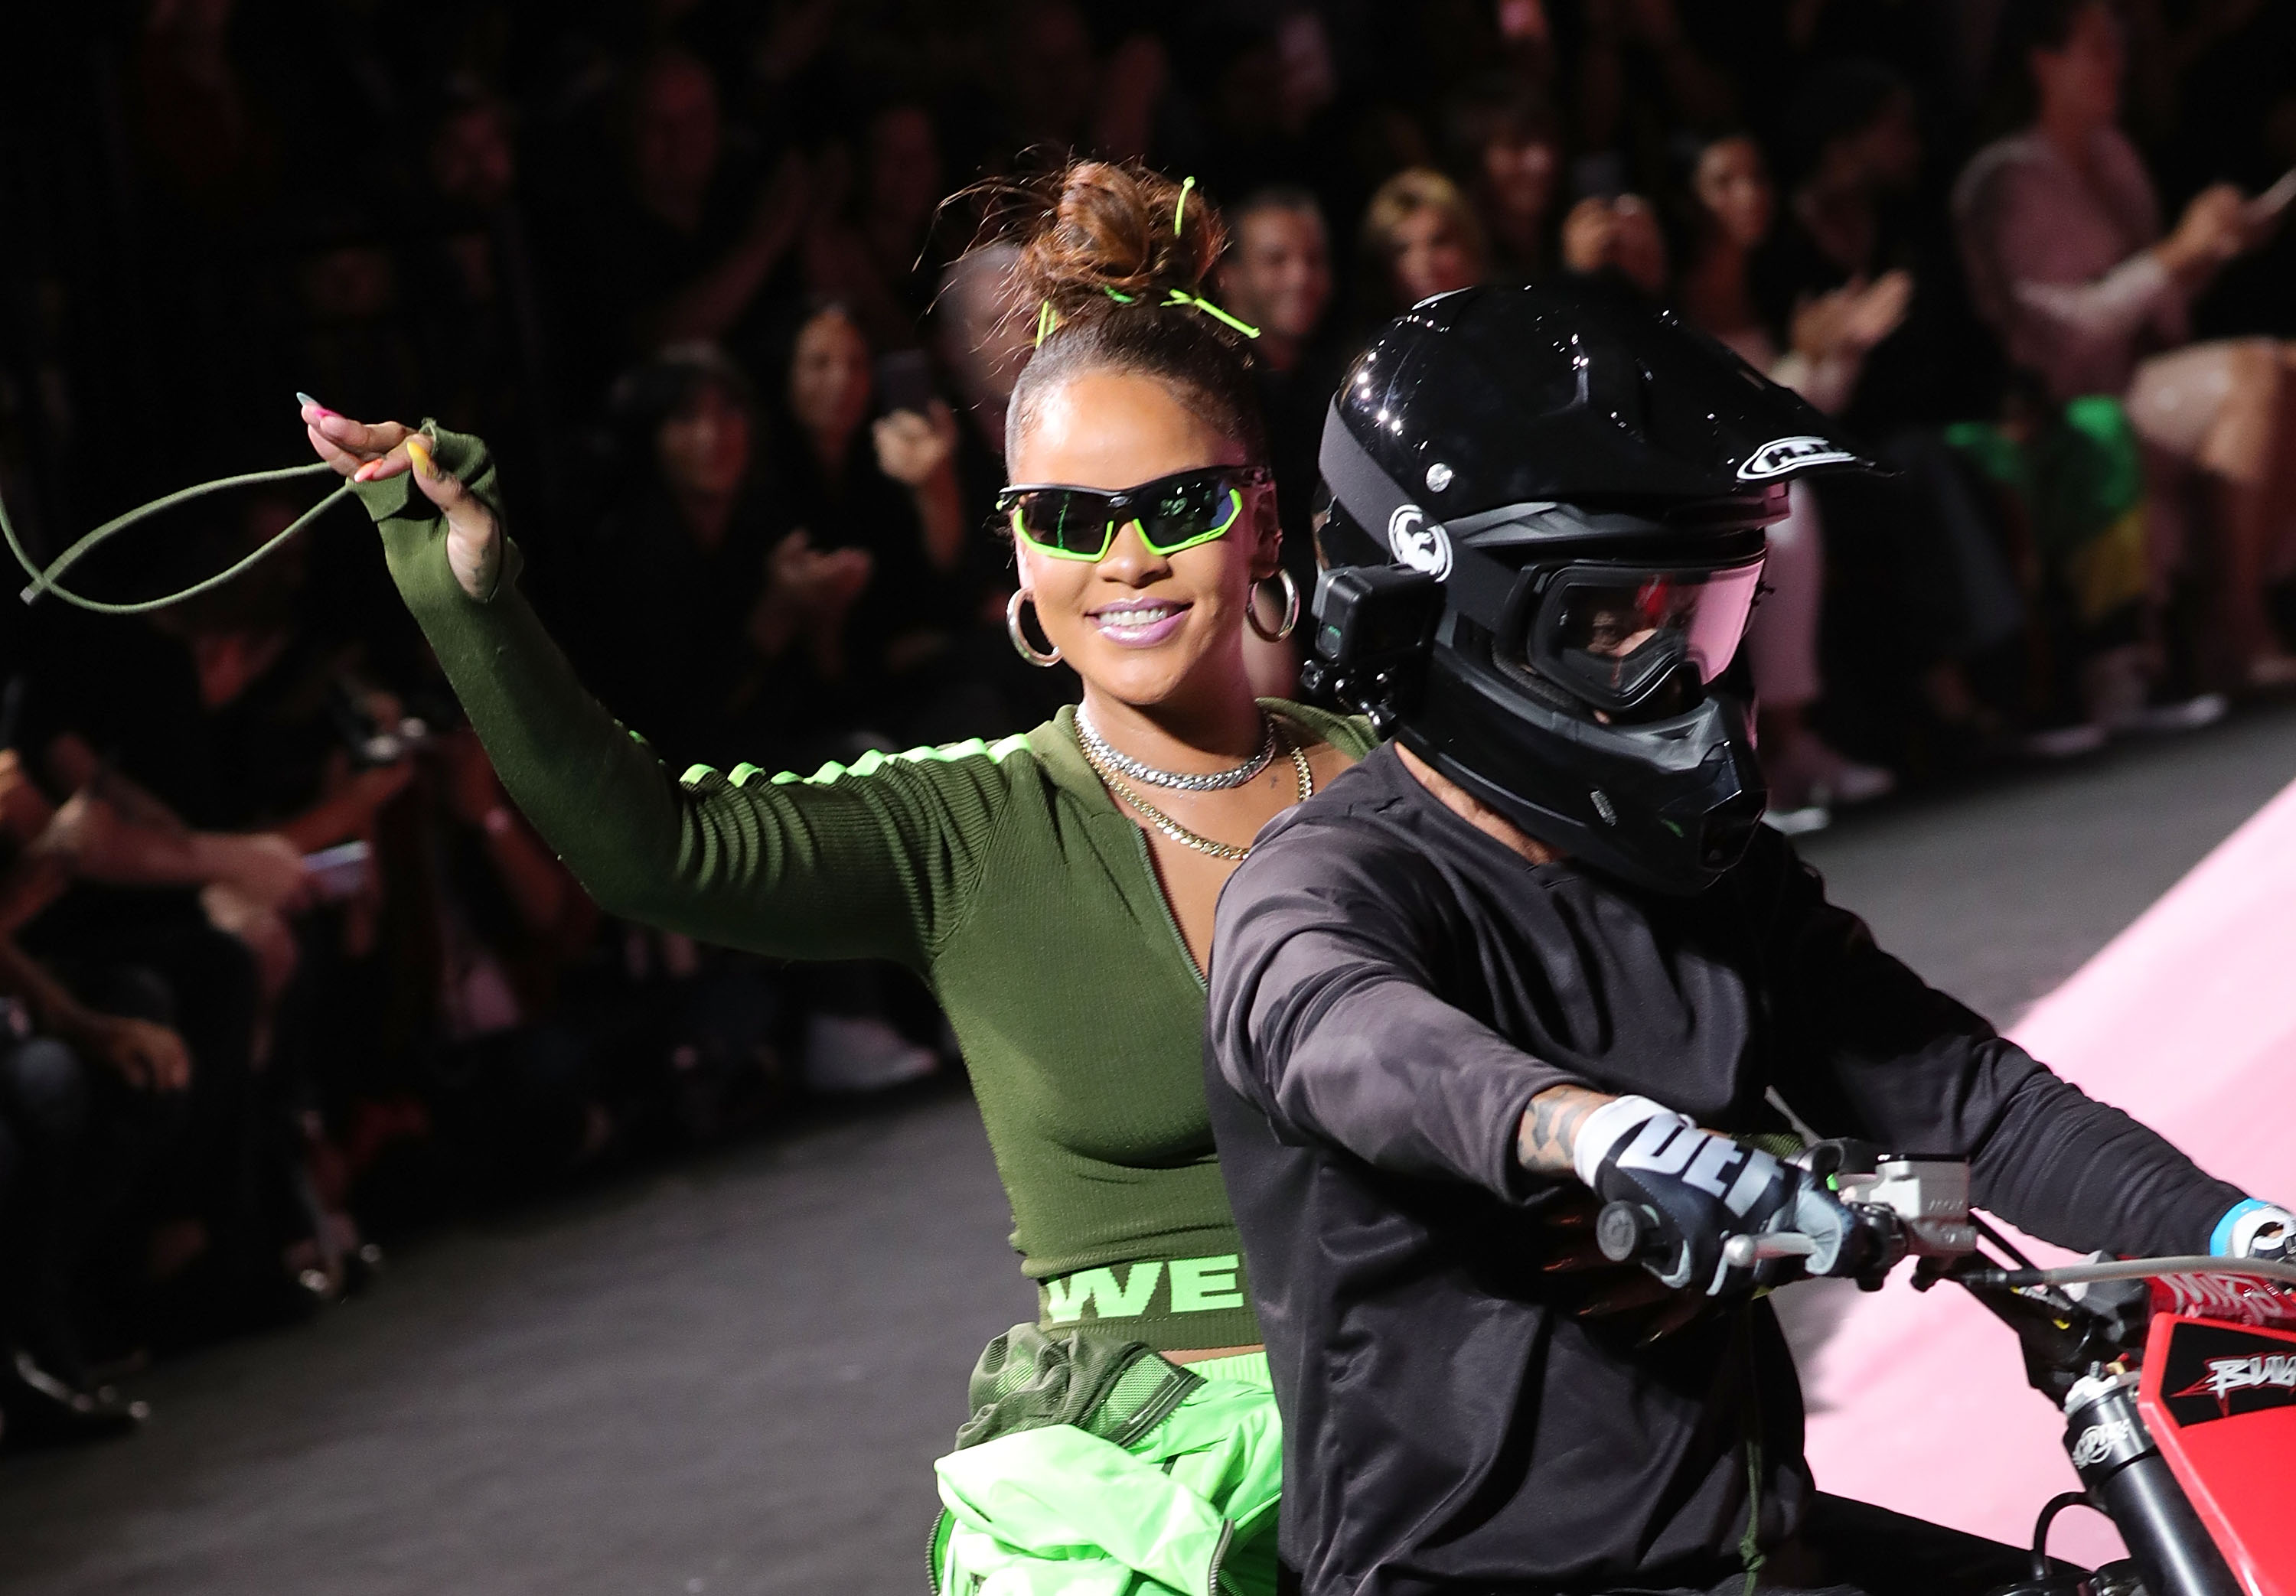 NEW YORK, NY - SEPTEMBER 10:  Rihanna waves from the back of a motorcycle at the finale of the Fenty Puma by Rihanna show during New York Fashion Week at the 69th Regiment Armory on September 10, 2017 in New York City.  (Photo by Paul Morigi/WireImage)